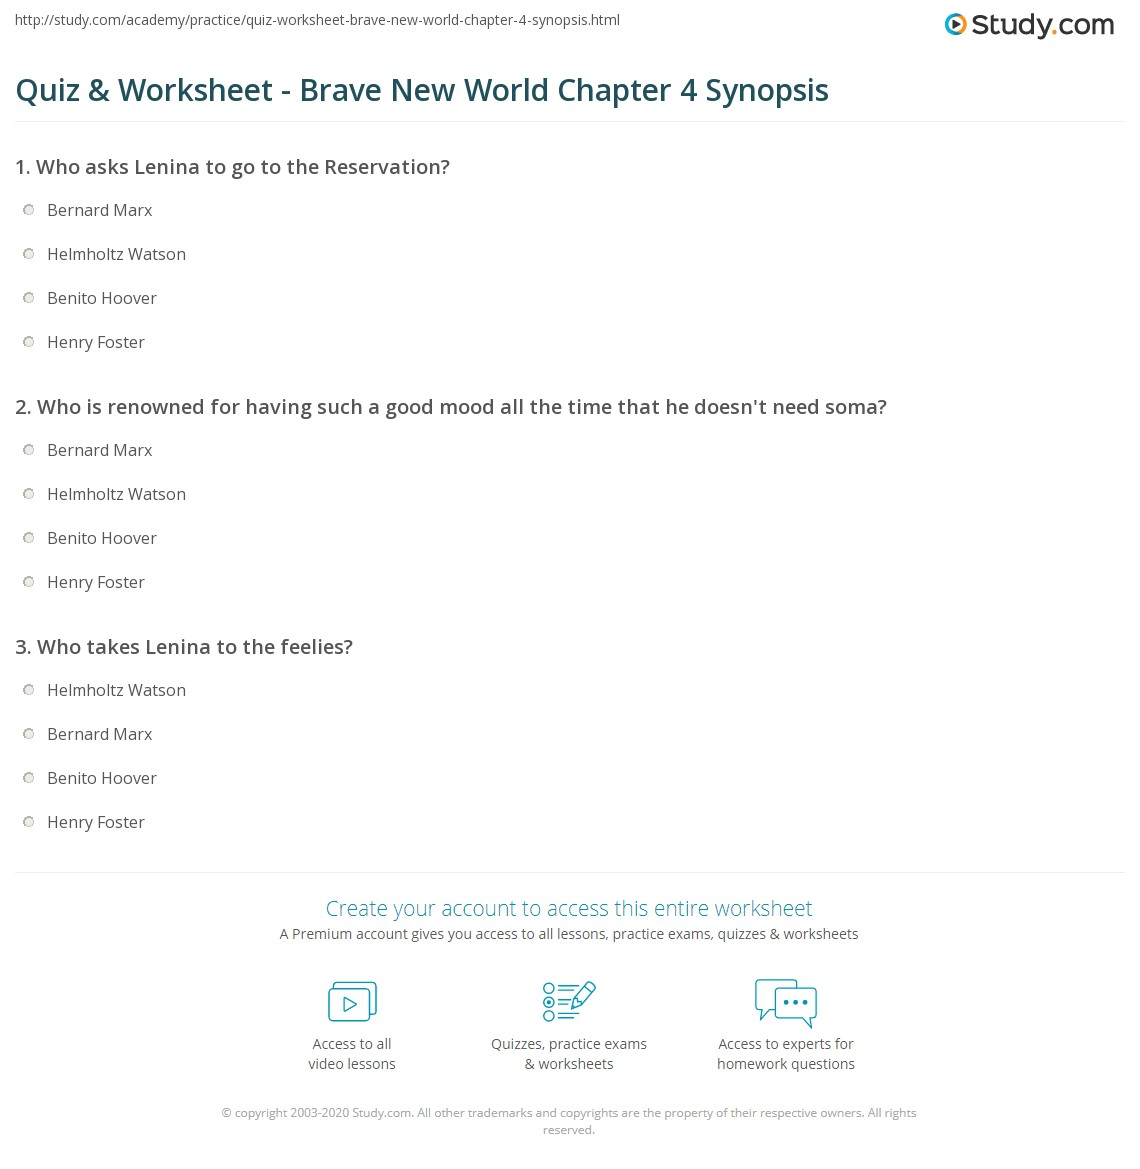 Brave New World Quotes About Soma Quiz & Worksheet  Brave New World Chapter 4 Synopsis  Study